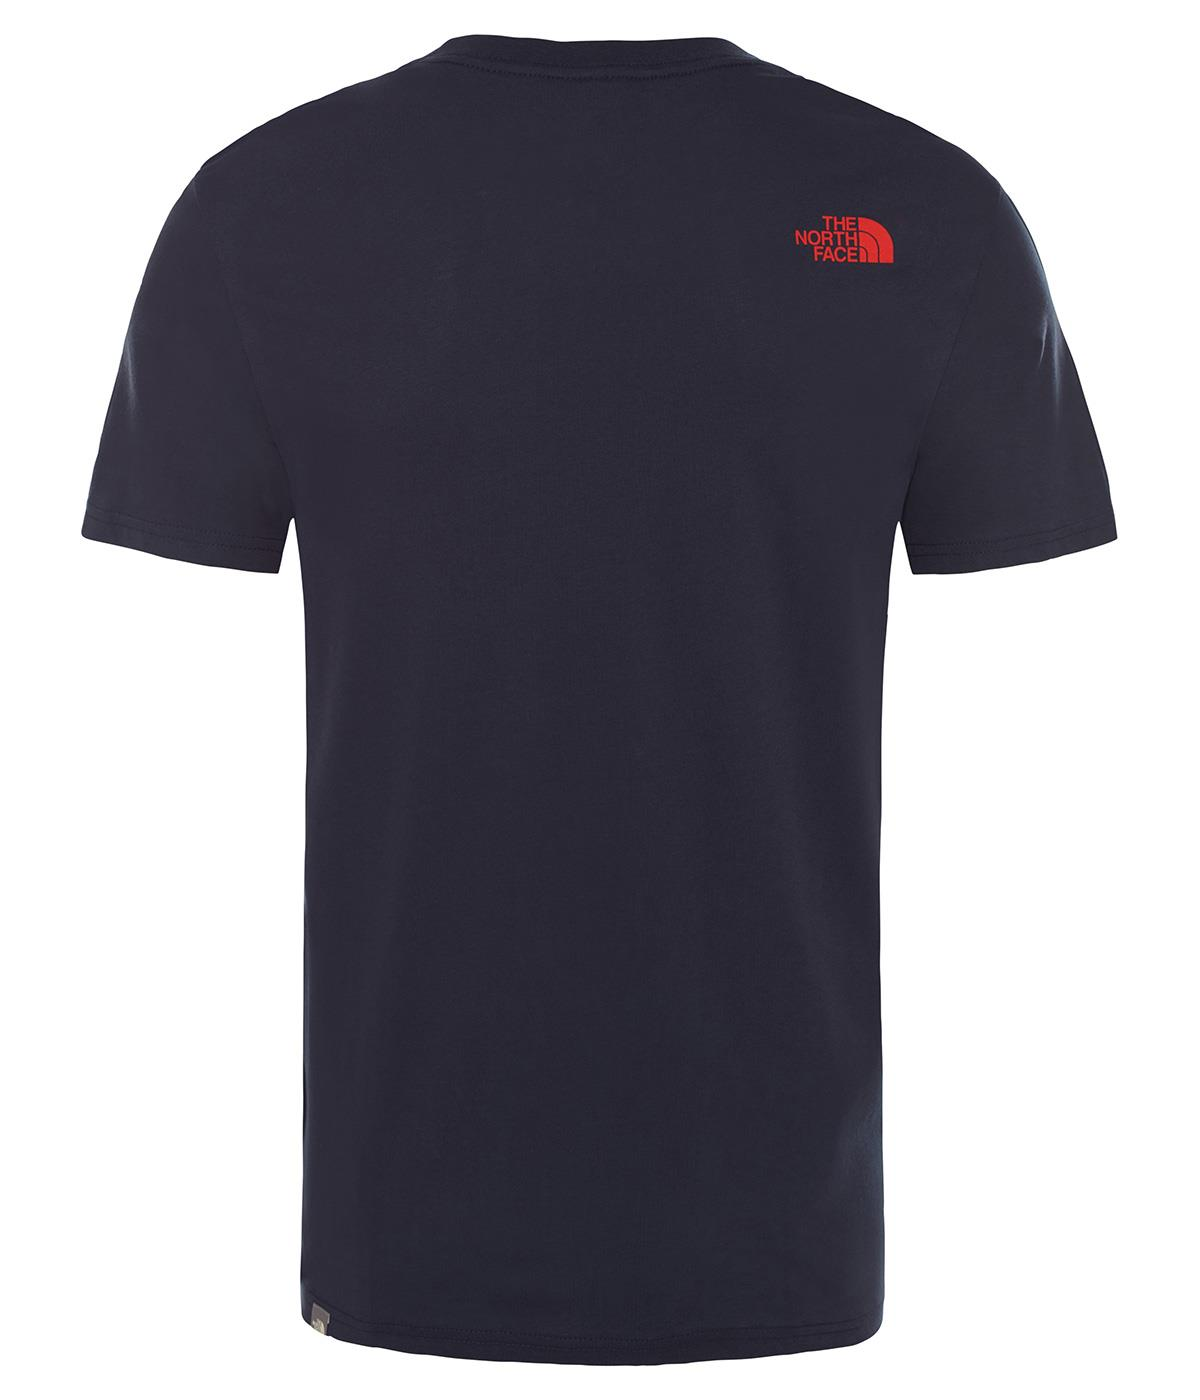 The Northface Erkek S/S Great Peak Tee-Eu T93S3Qh2G Tişört